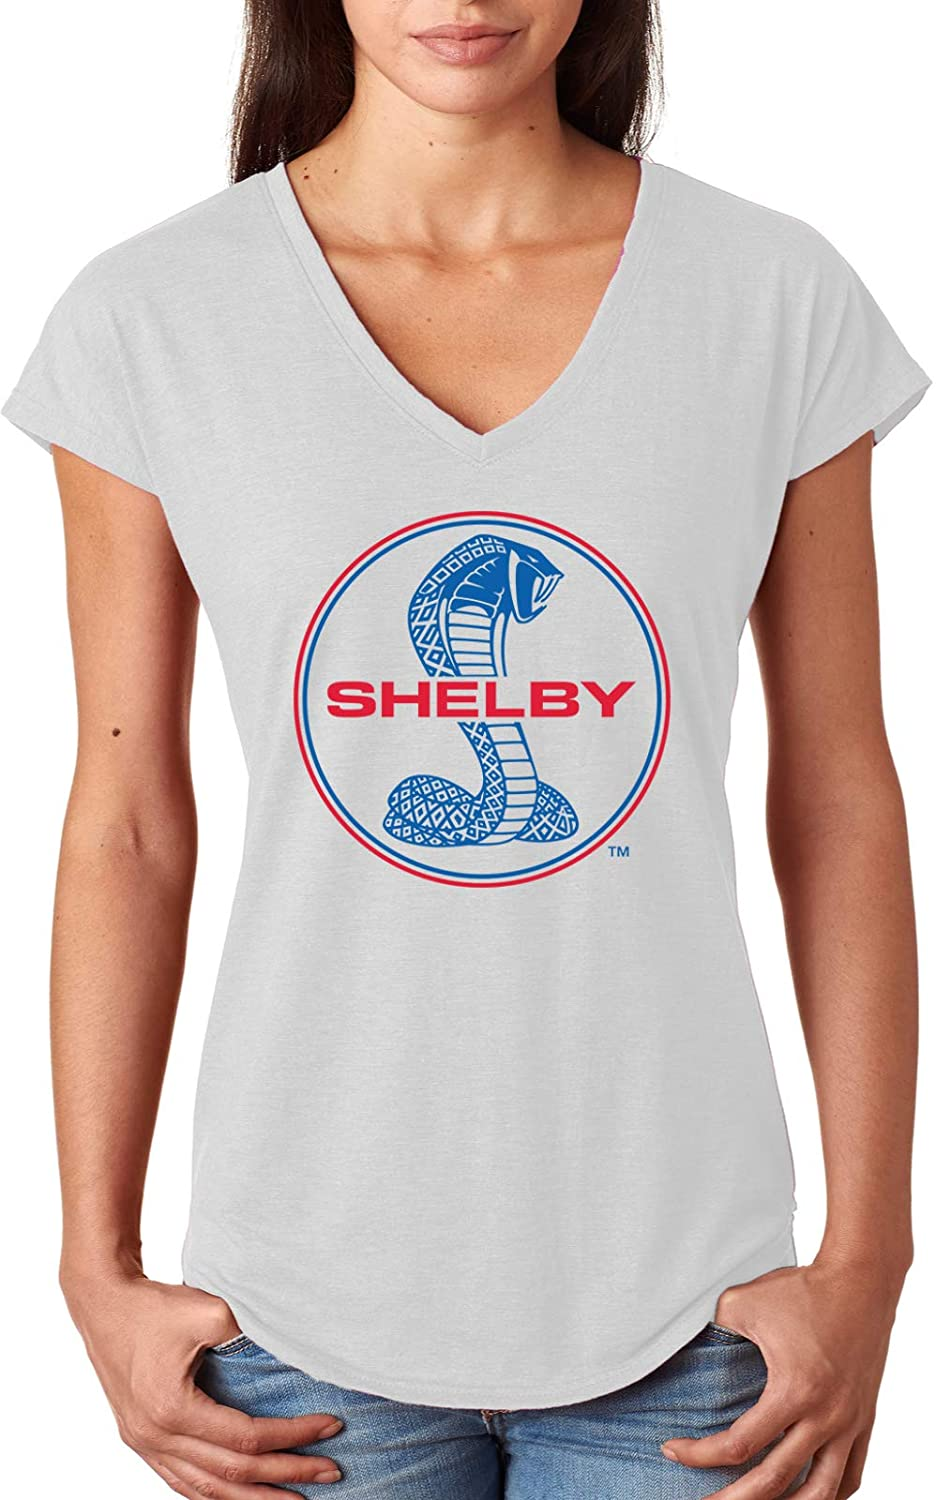 Ladies Ford Mustang T-Shirt Shelby Blue and Red Logo Triblend V-Neck